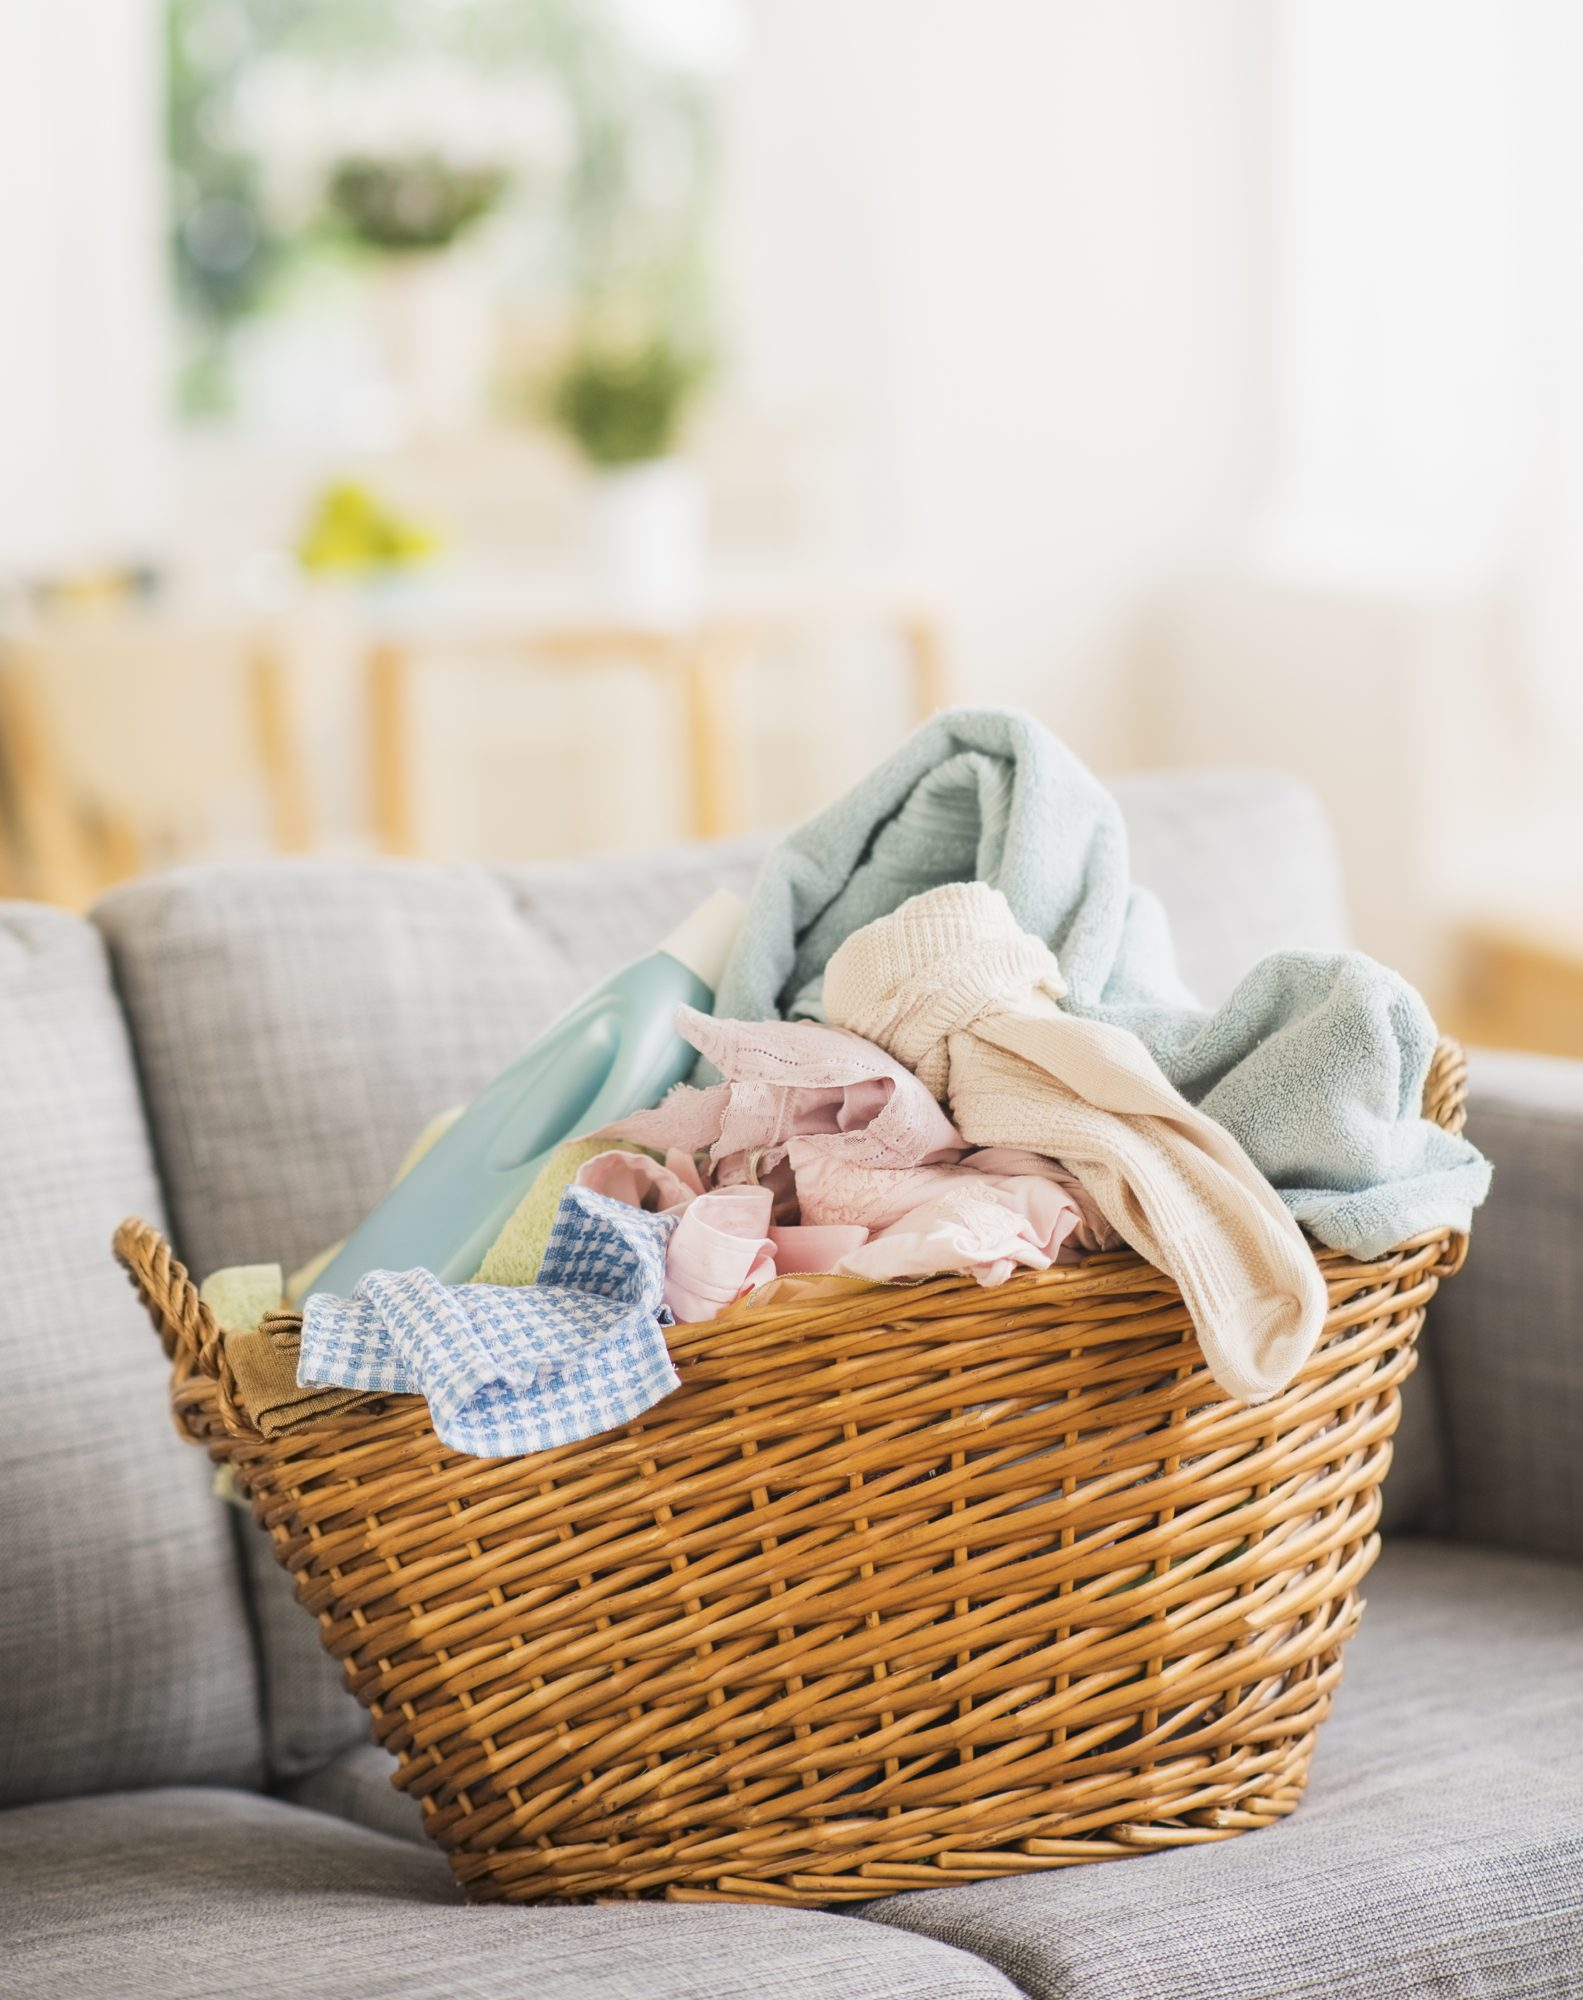 basket of clean laundry